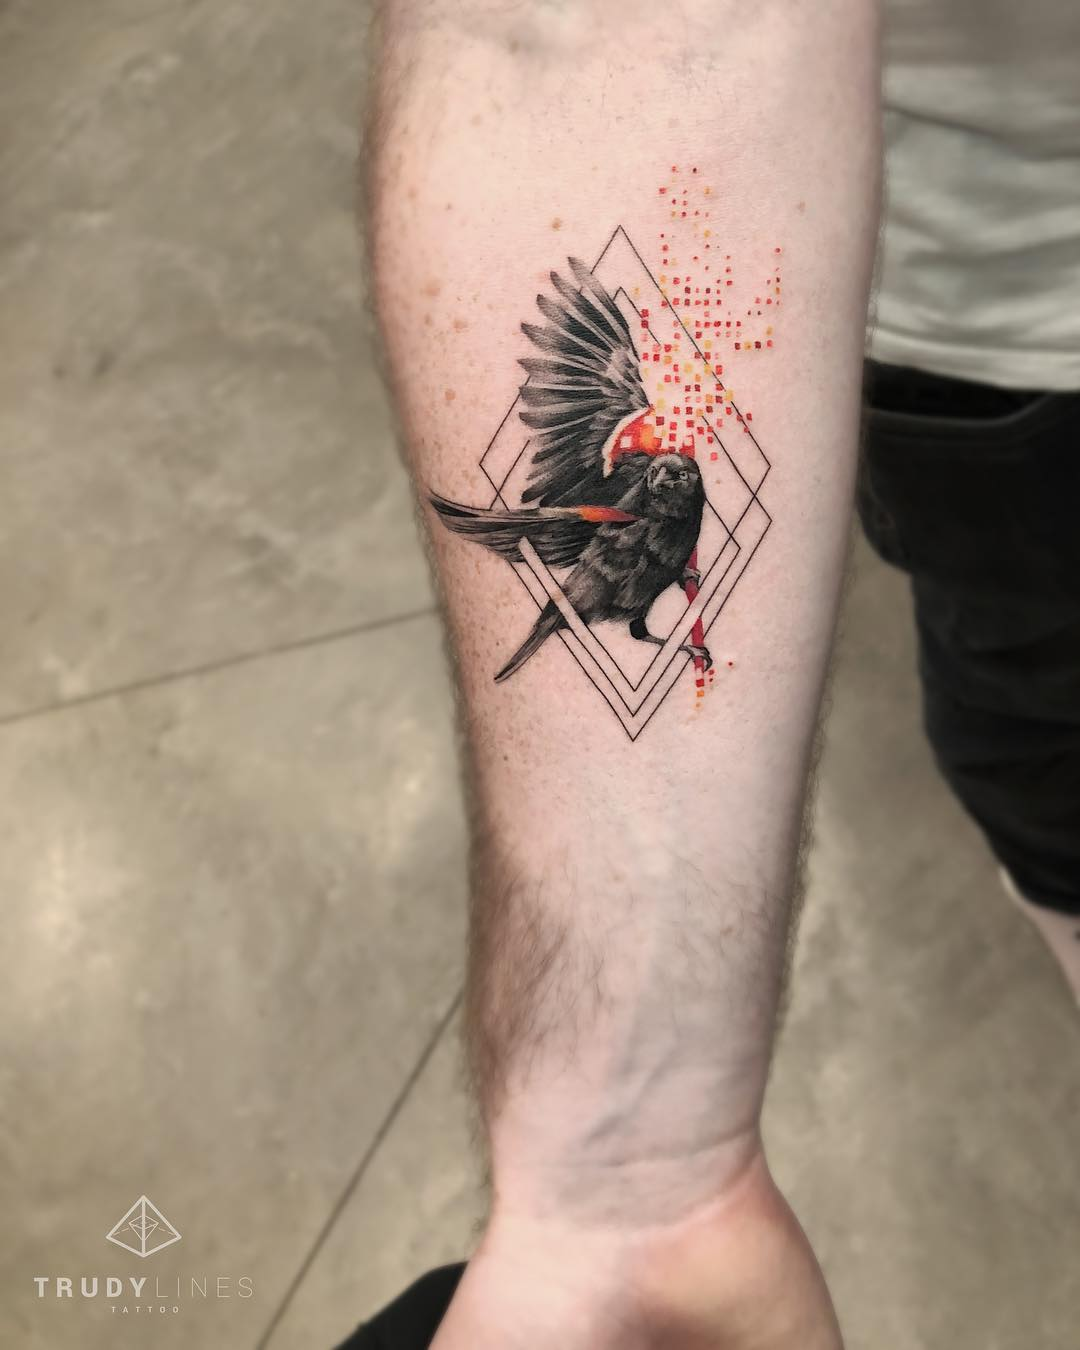 Blackbird by @trudy_lines_tattoo